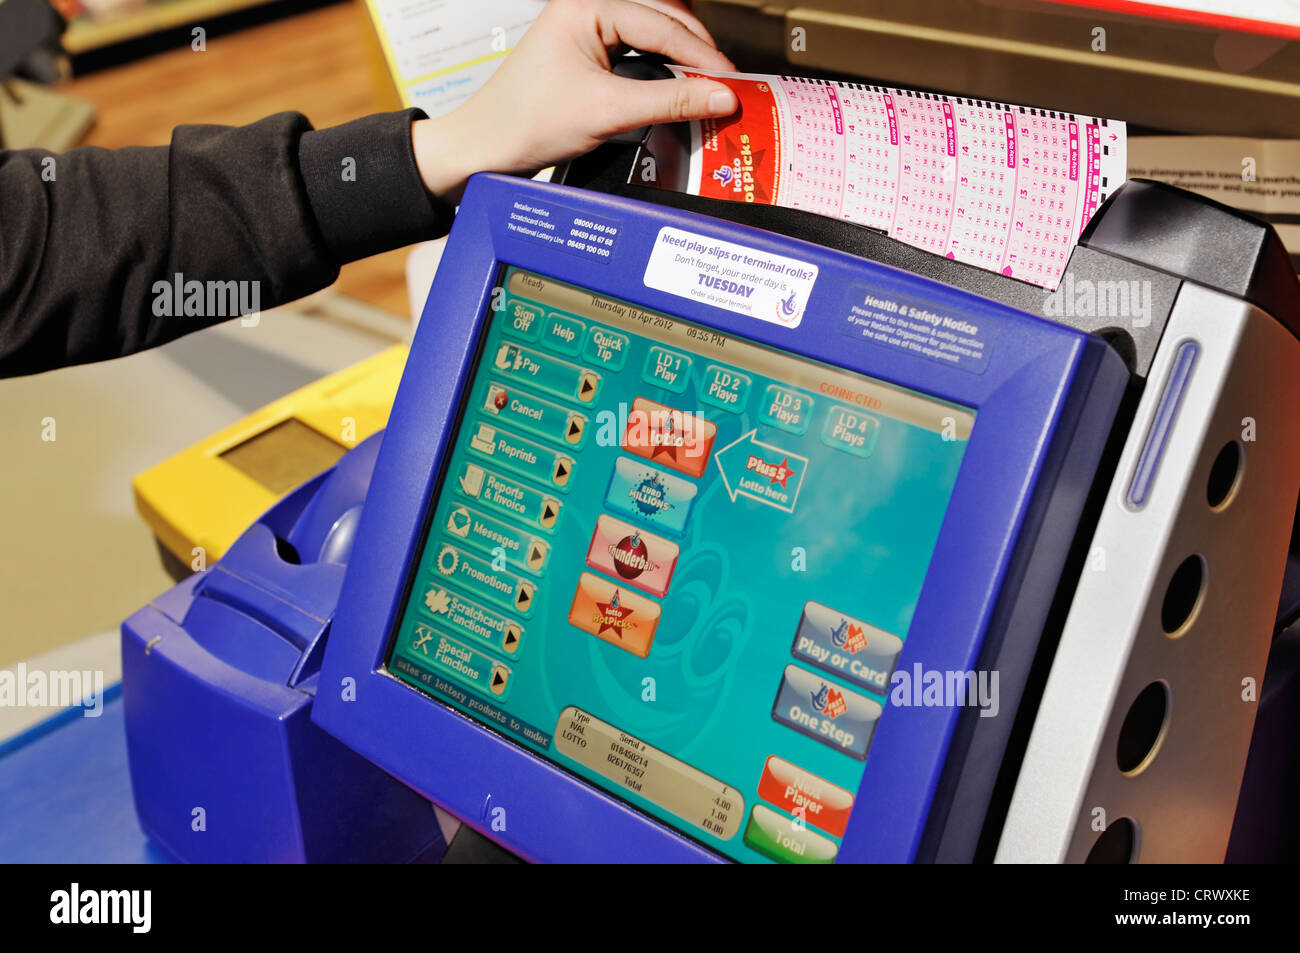 National Lottery Terminal in a Shop. UK. - Stock Image